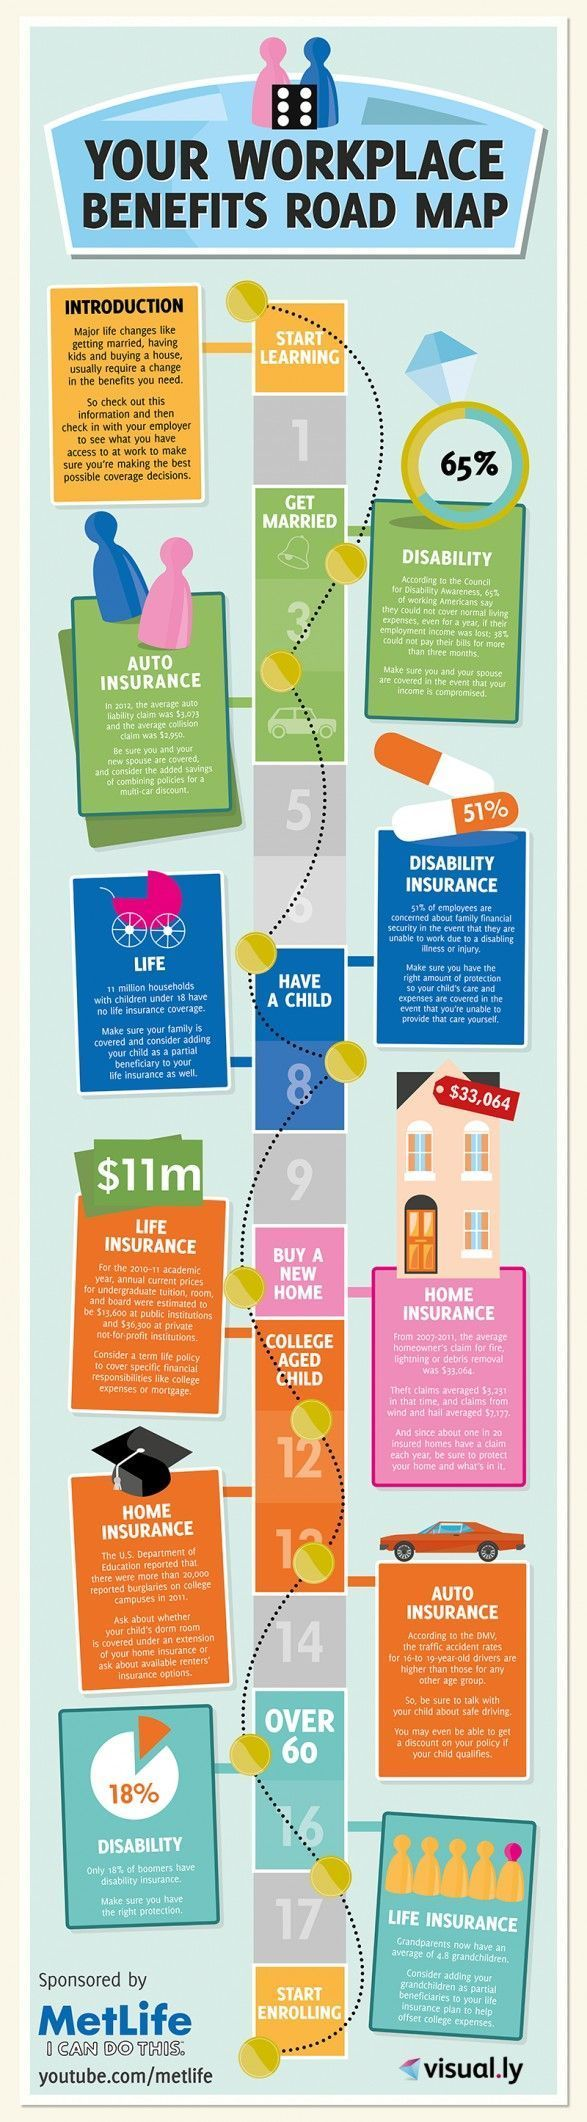 Employee benefits can be overwhelming, but this cool infographic lays out the basics of life insurance, auto insurance, disability and the rest, and how/when to update them! #LifeInsuranceFactsTips